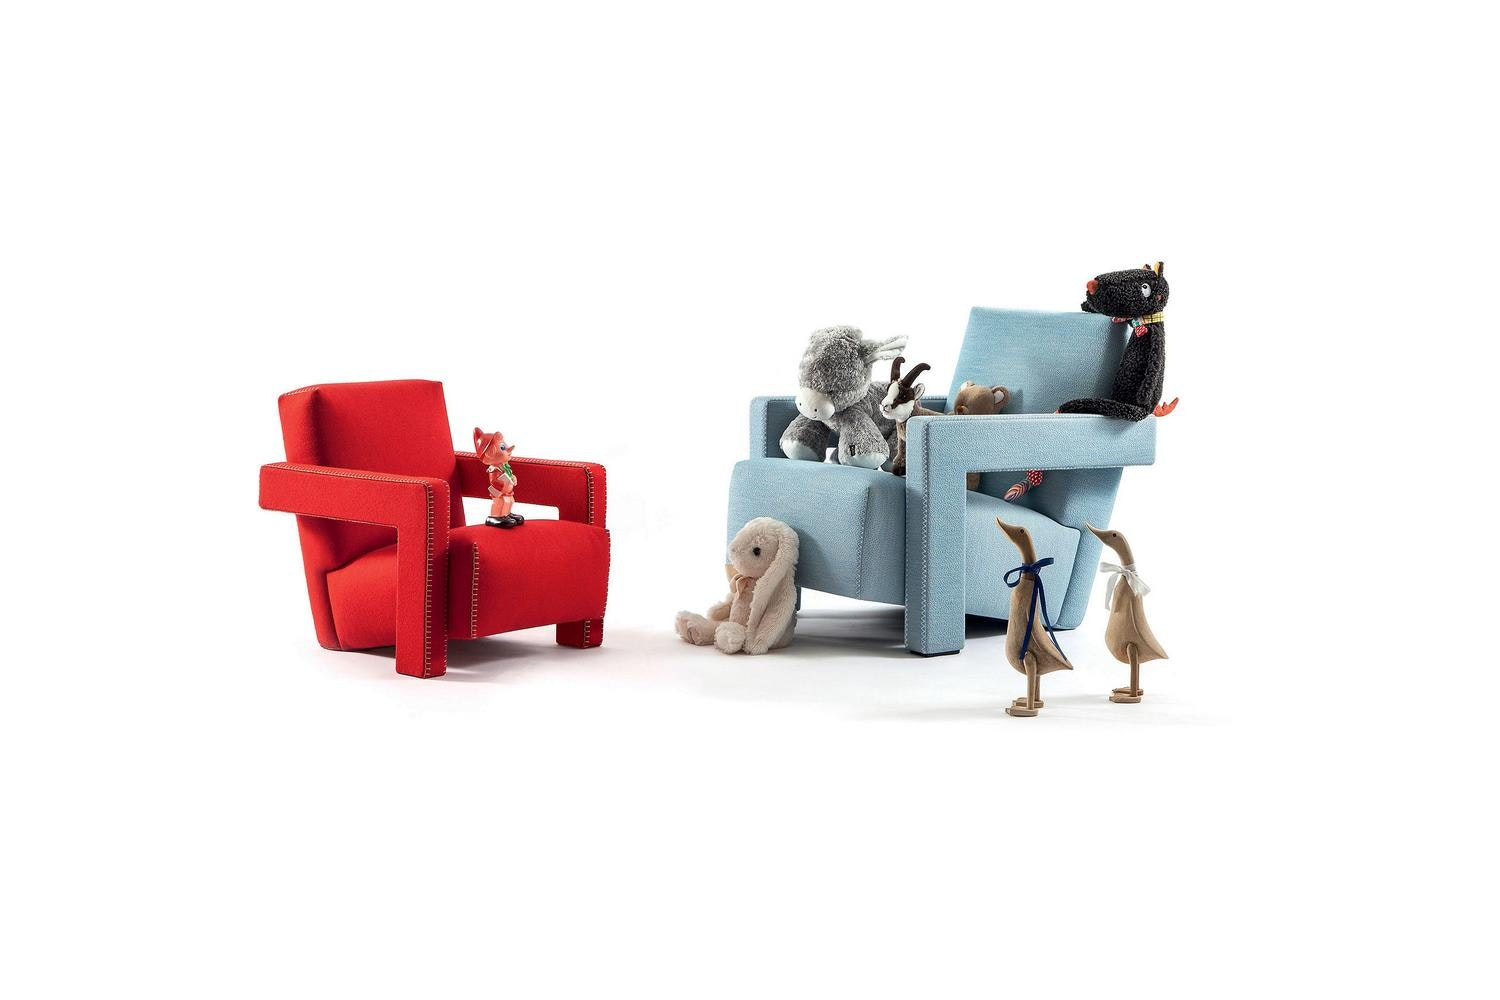 637 Baby Utrecht Armchair by Gerrit Thomas Rietveld for Cassina